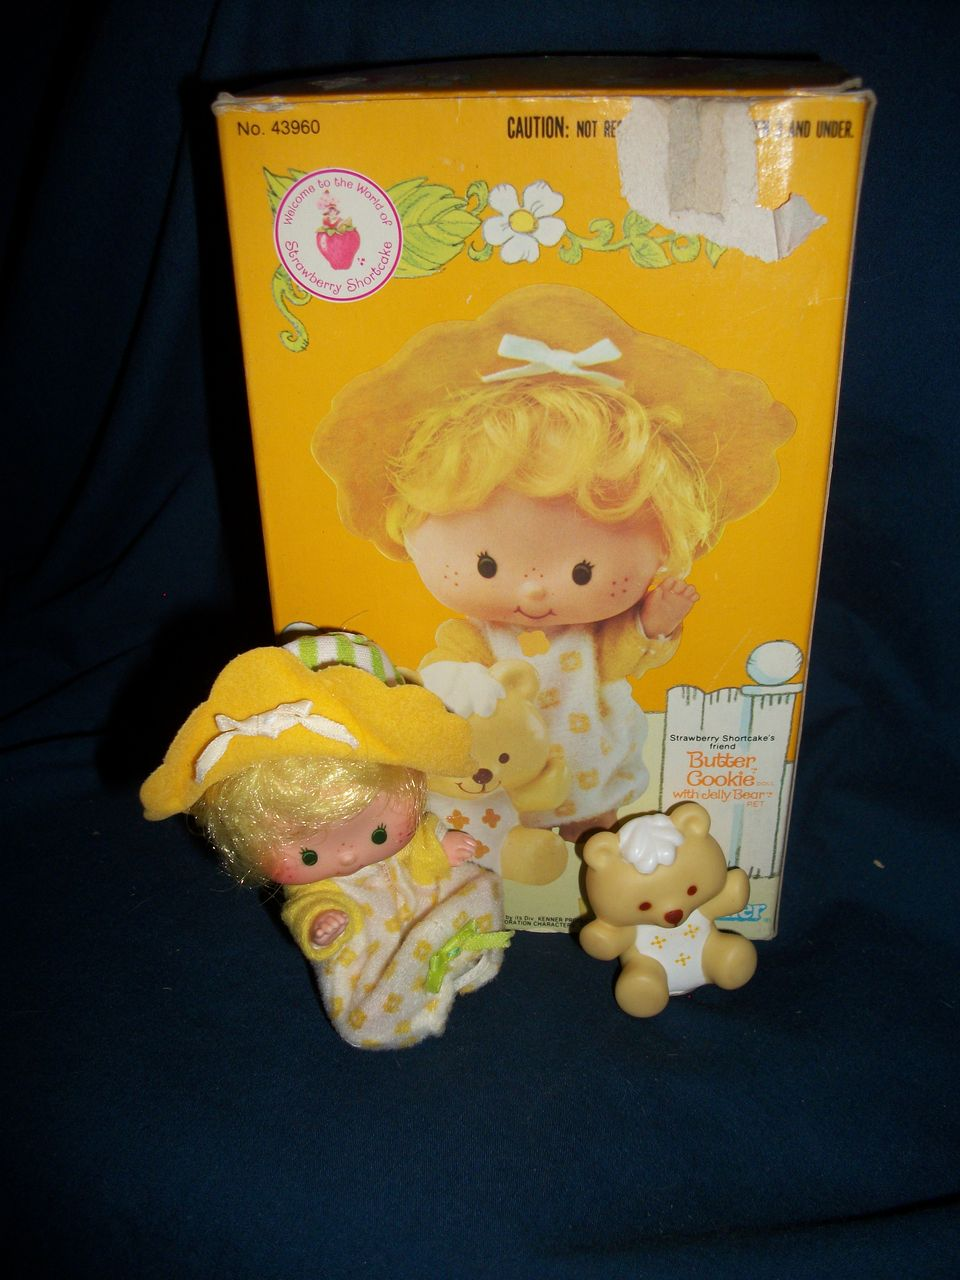 43960 Butter Cookie Kenner Strawberry Shortcake Doll US Buyer Free Postage & Insurance